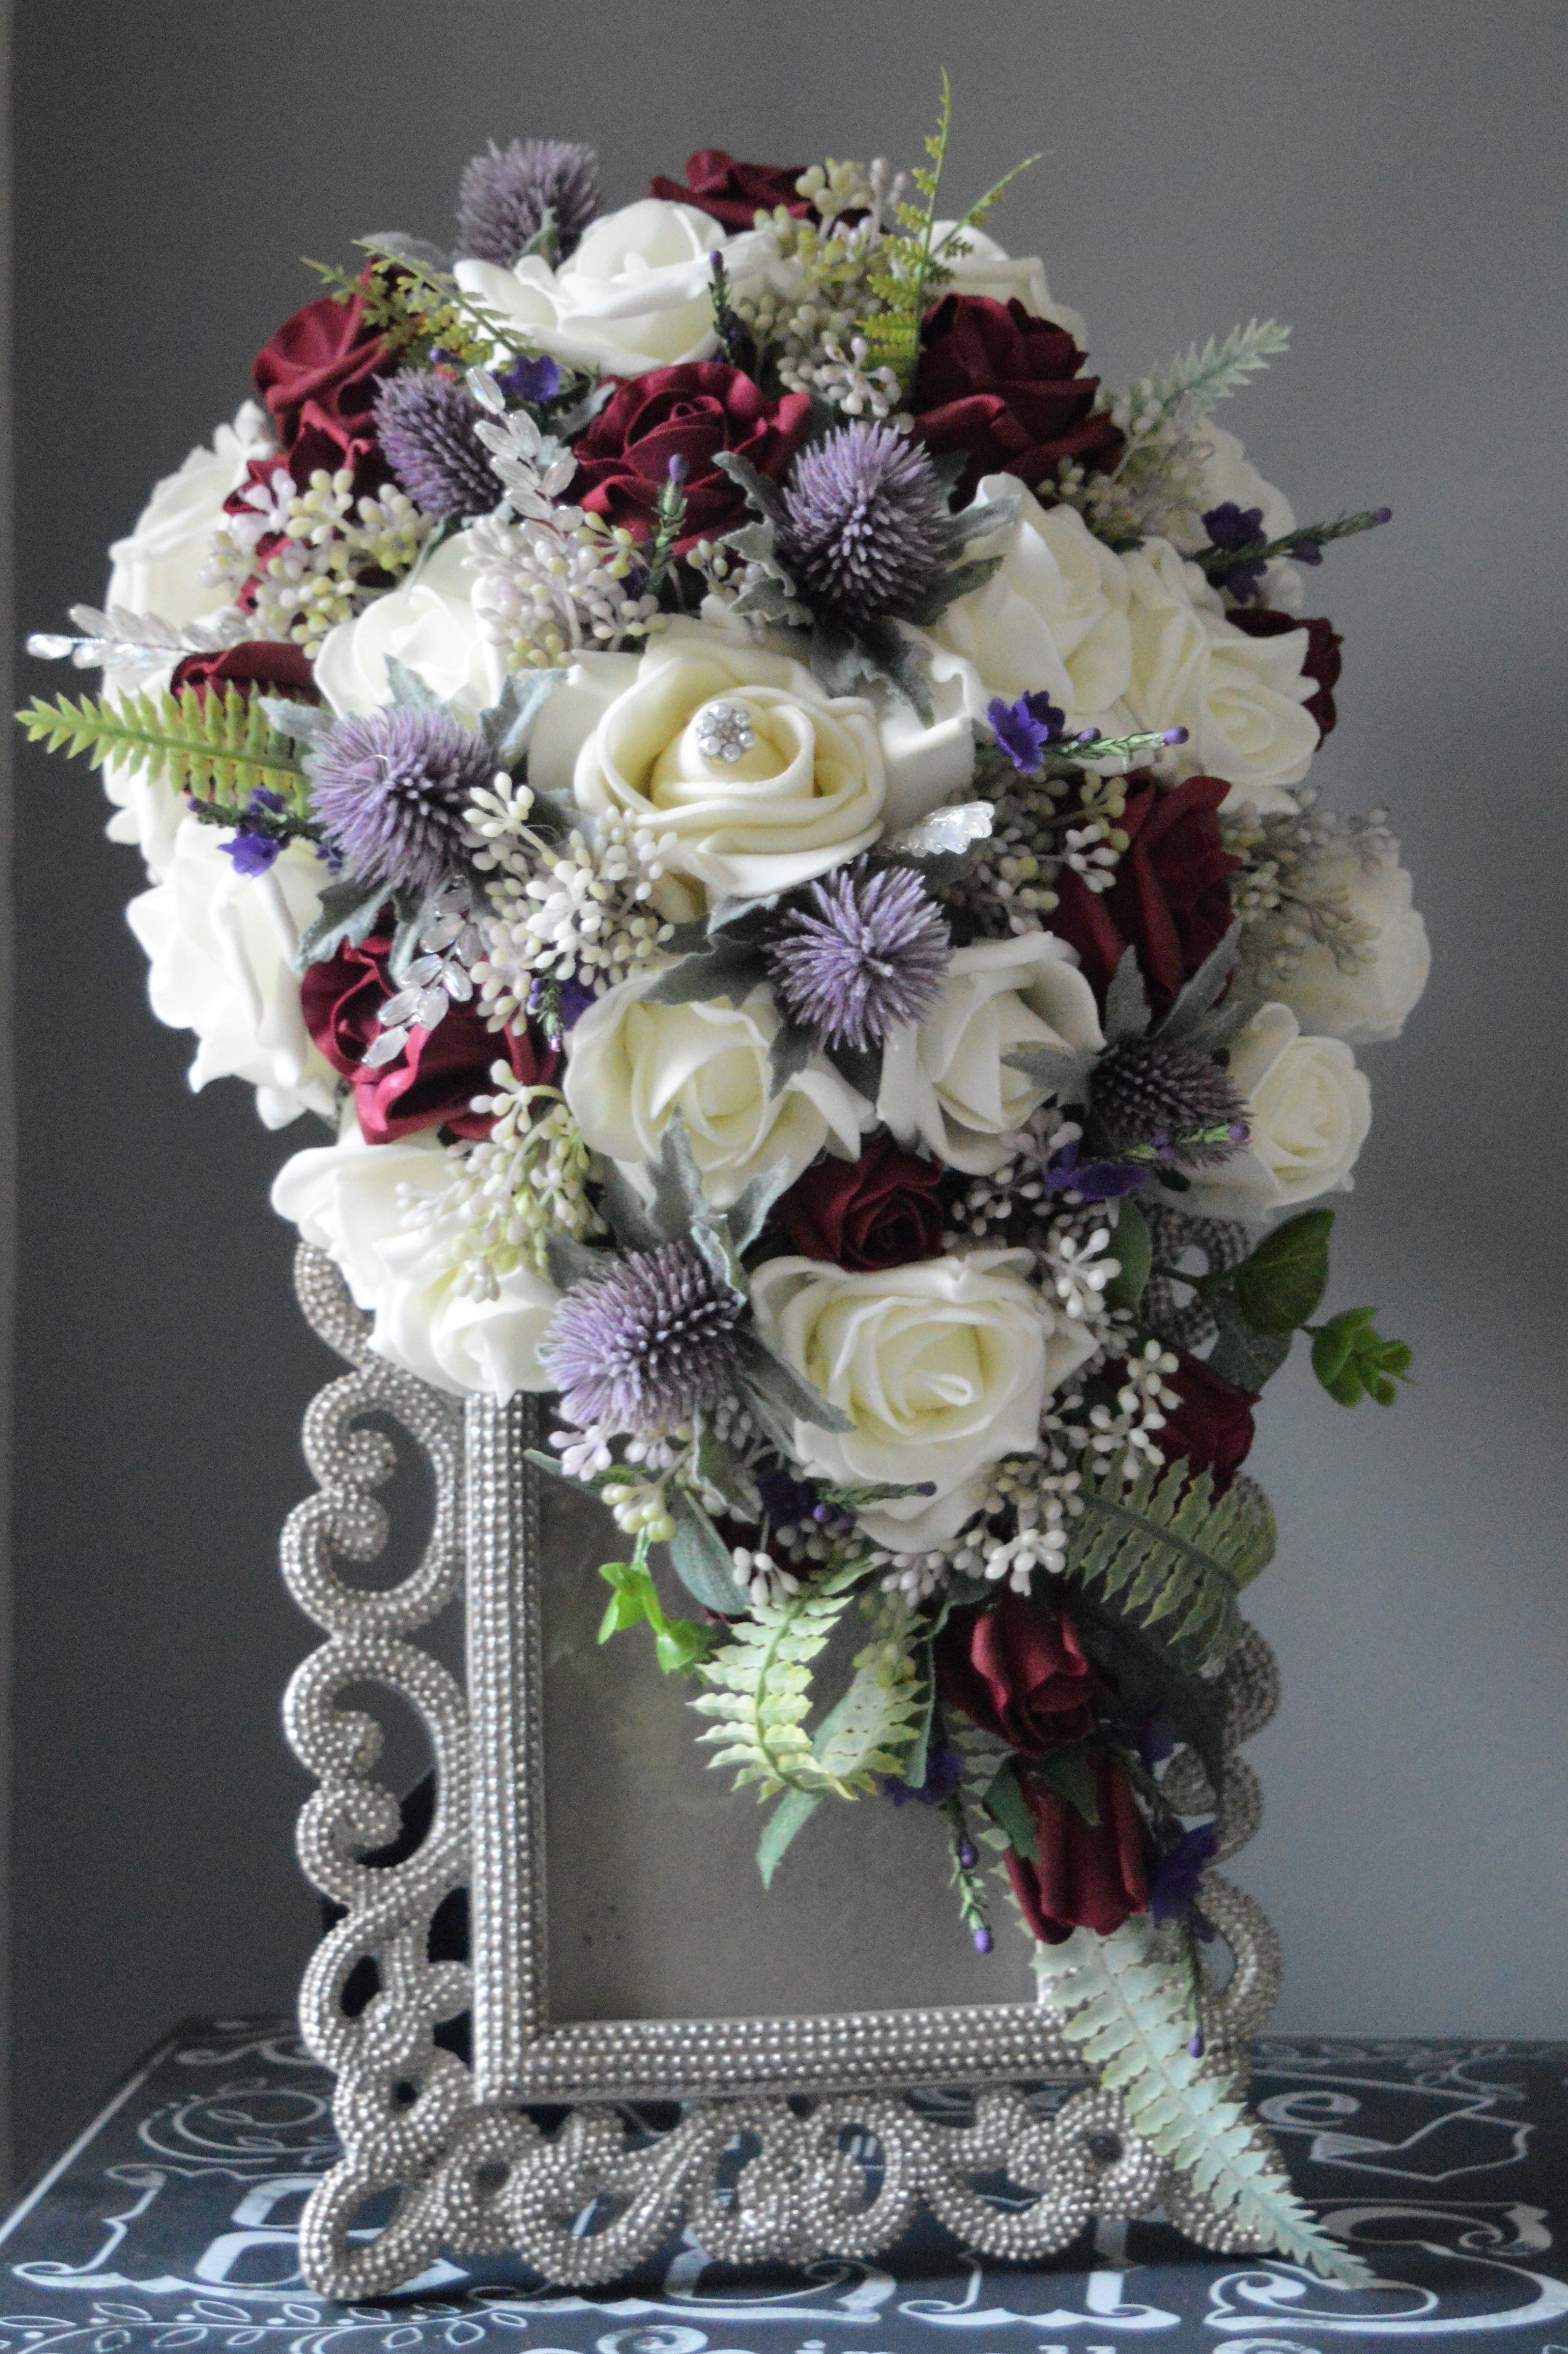 Sians Bespoke Teardrop Bouquet Carries On The Scottish Theme With